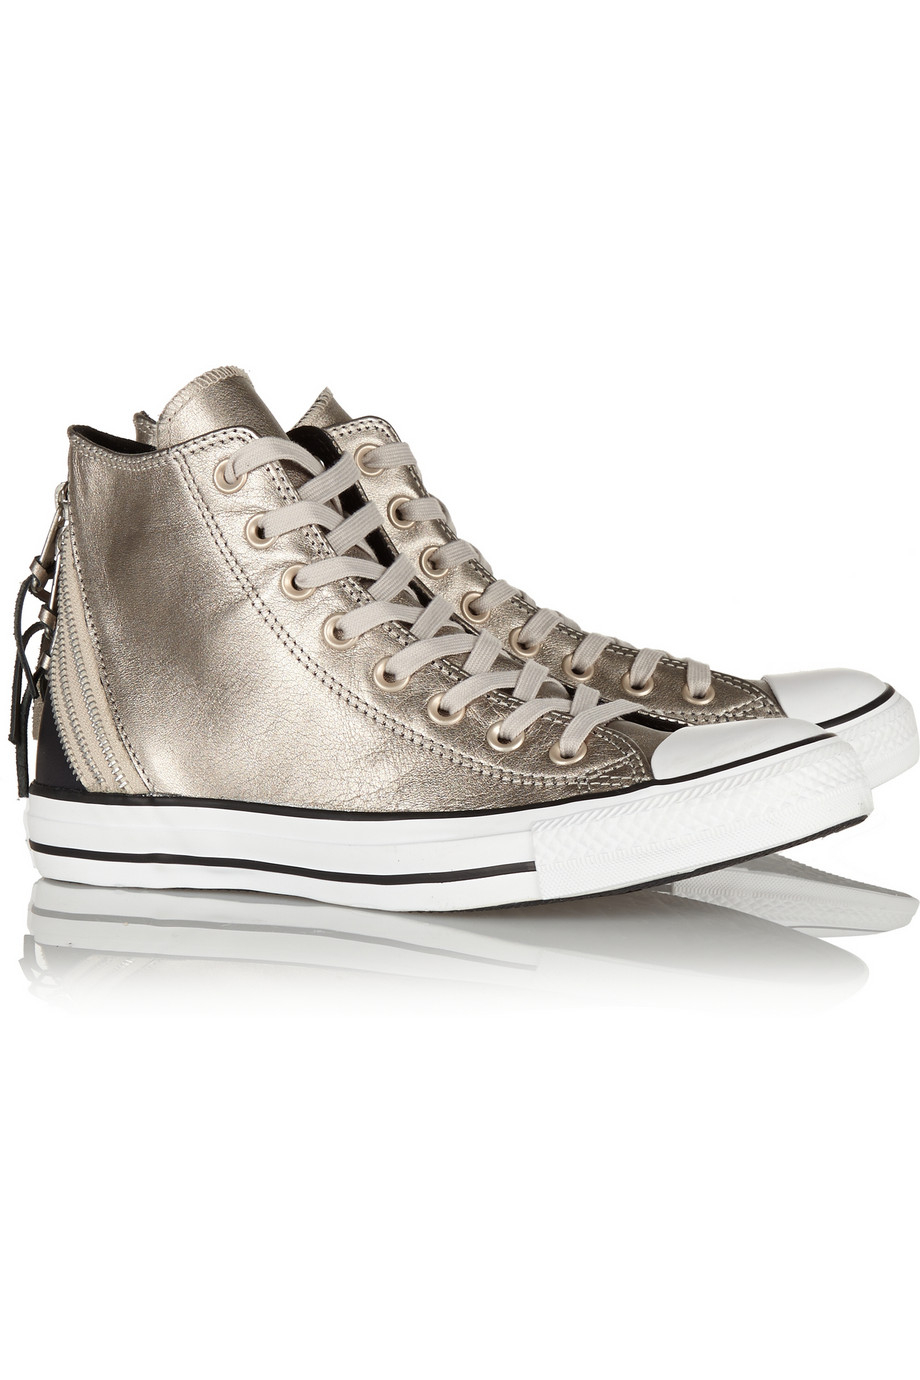 cfd7e507517f Gallery. Previously sold at  NET-A-PORTER · Women s Converse Chuck Taylor  Women s Puma Classic Sneaker ...